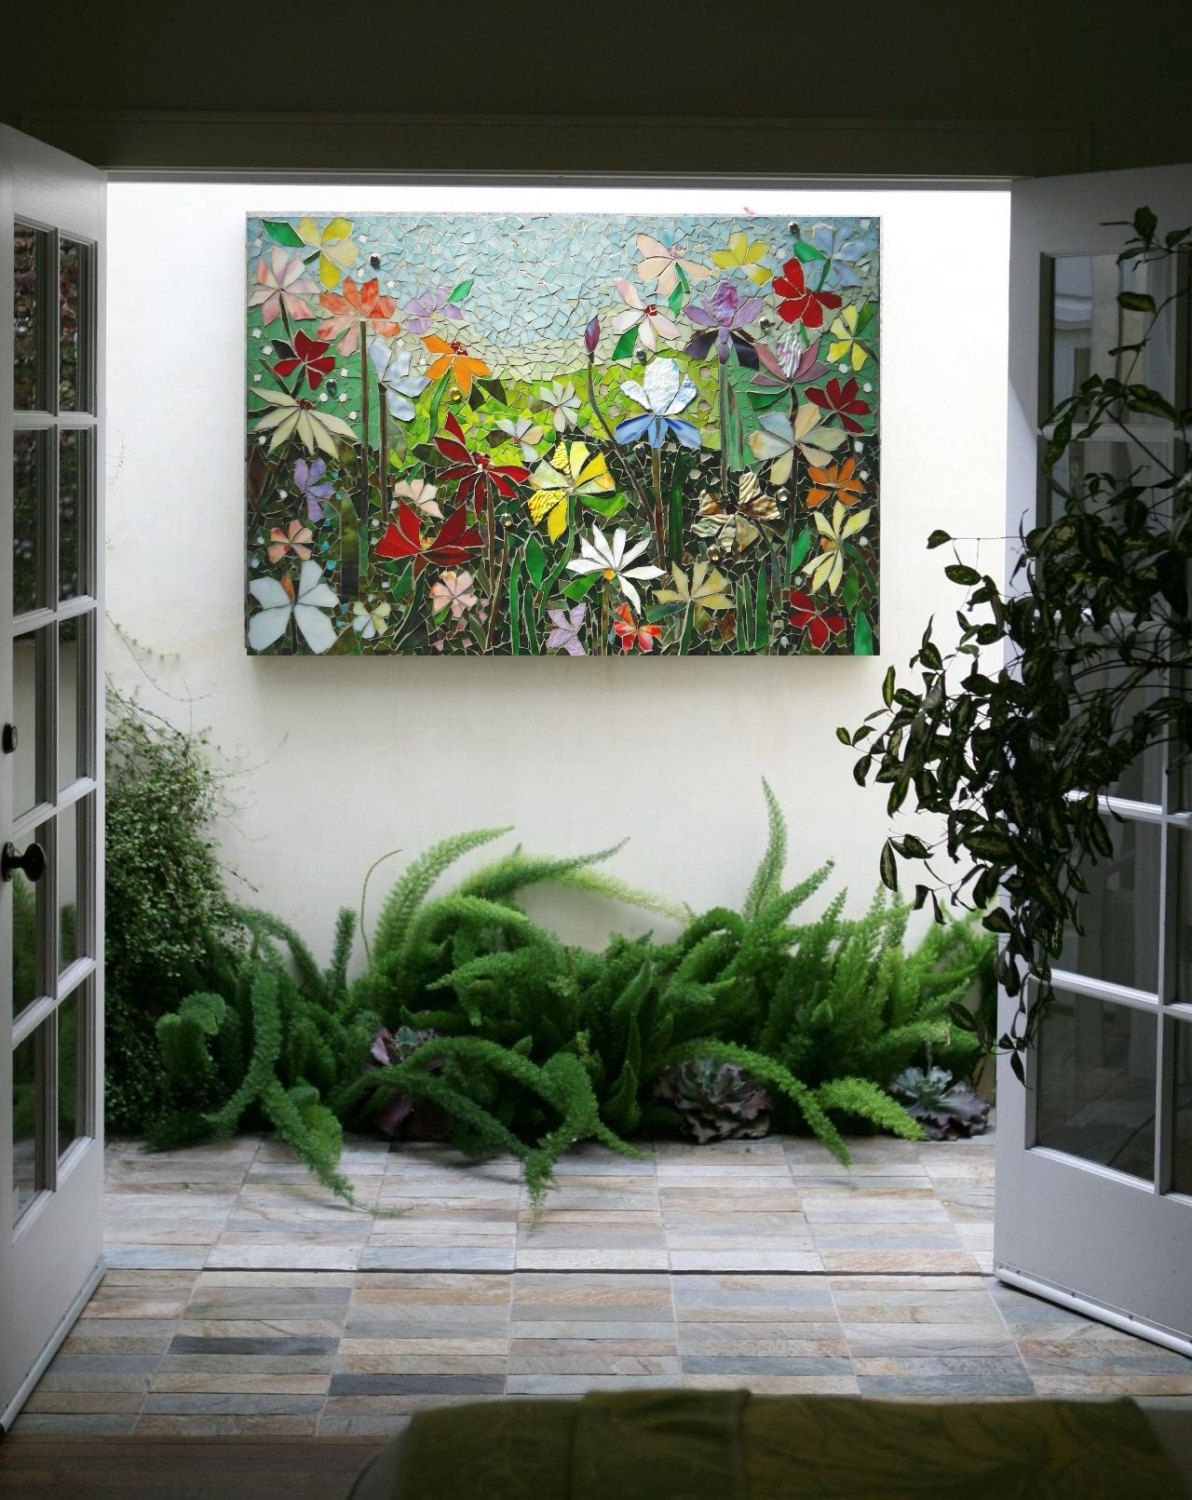 Most Recently Released Mosaic Wall Art Stained Glass Wall Decor Floral Garden Indoor Within Stained Glass Wall Art (View 14 of 15)